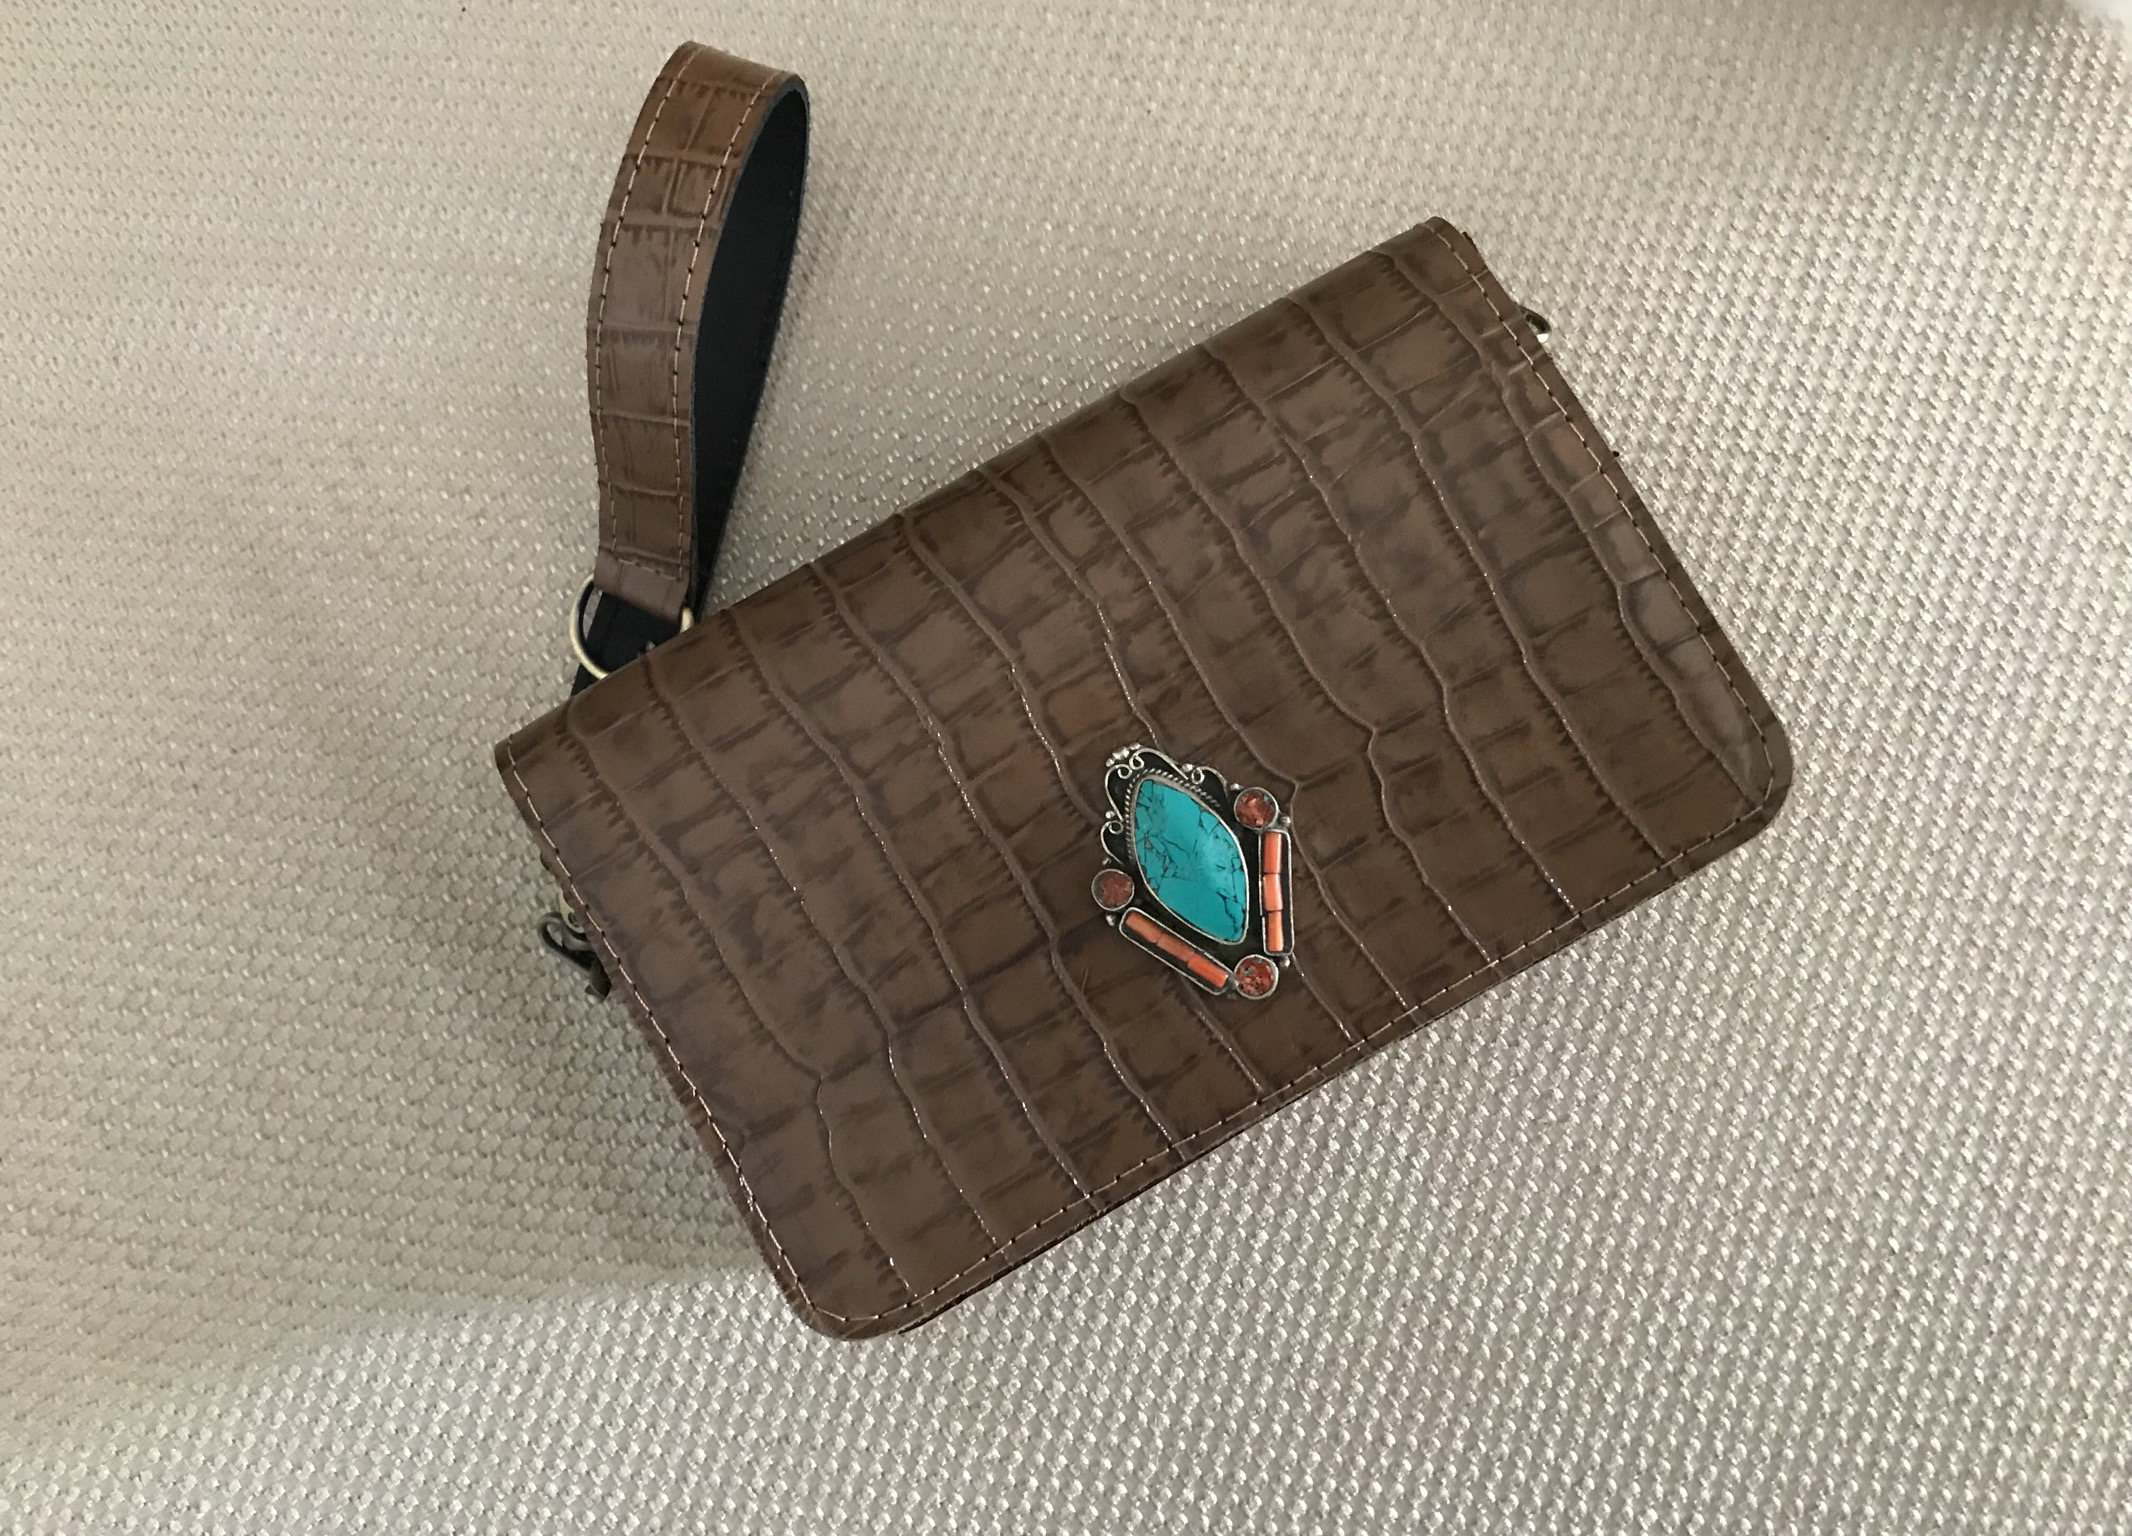 Mini jewelry bag leather croco brown